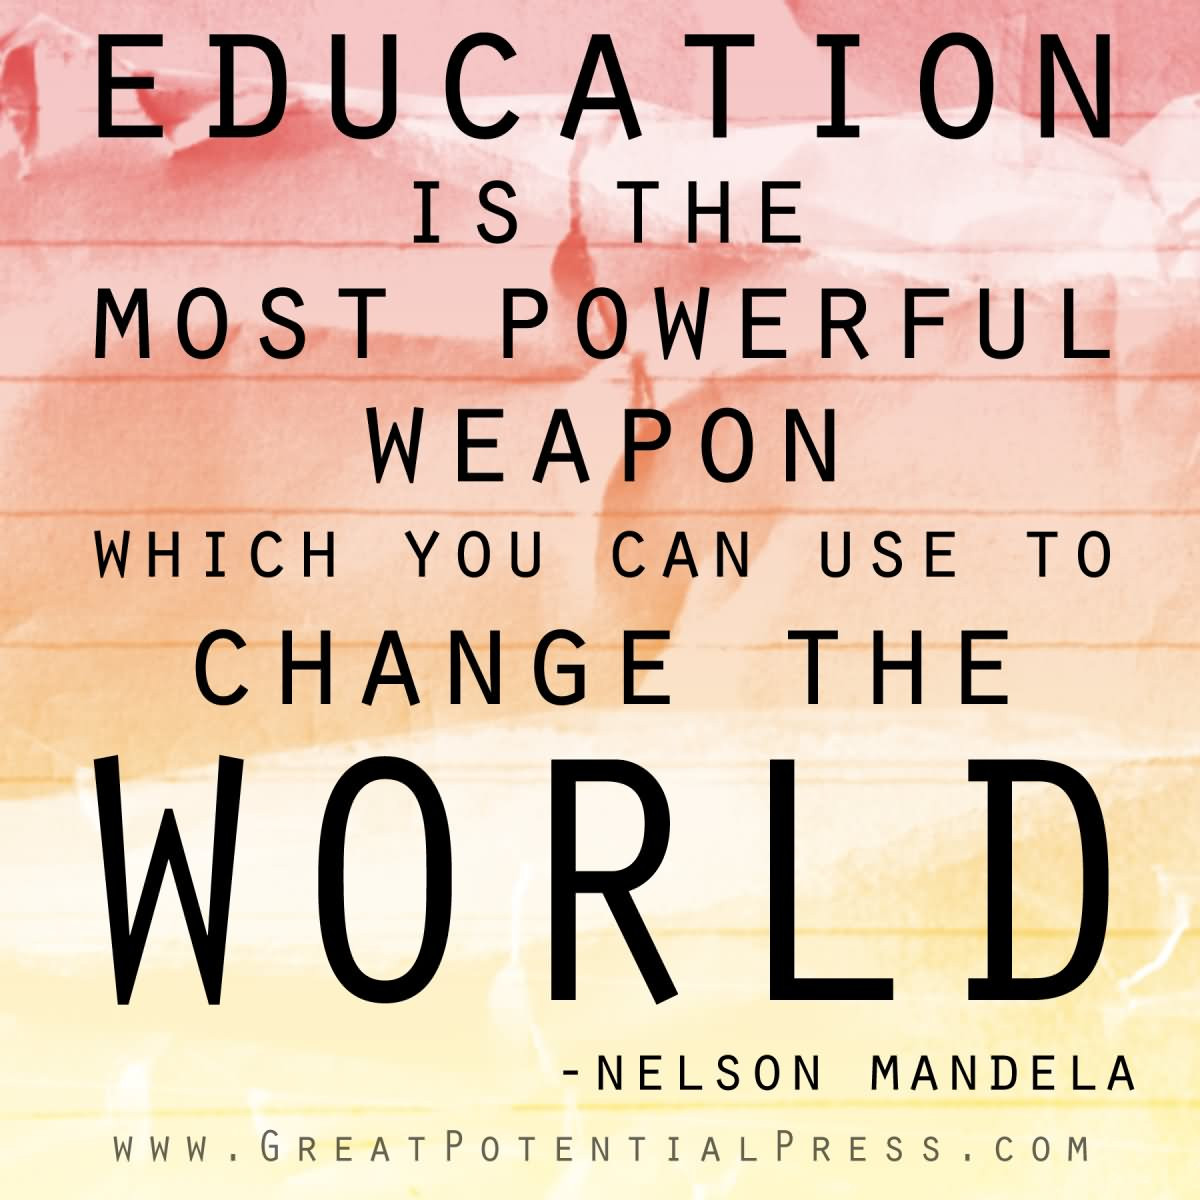 Nelson Mandela Quotes About Education  Education is the most powerful weapon which you can use to